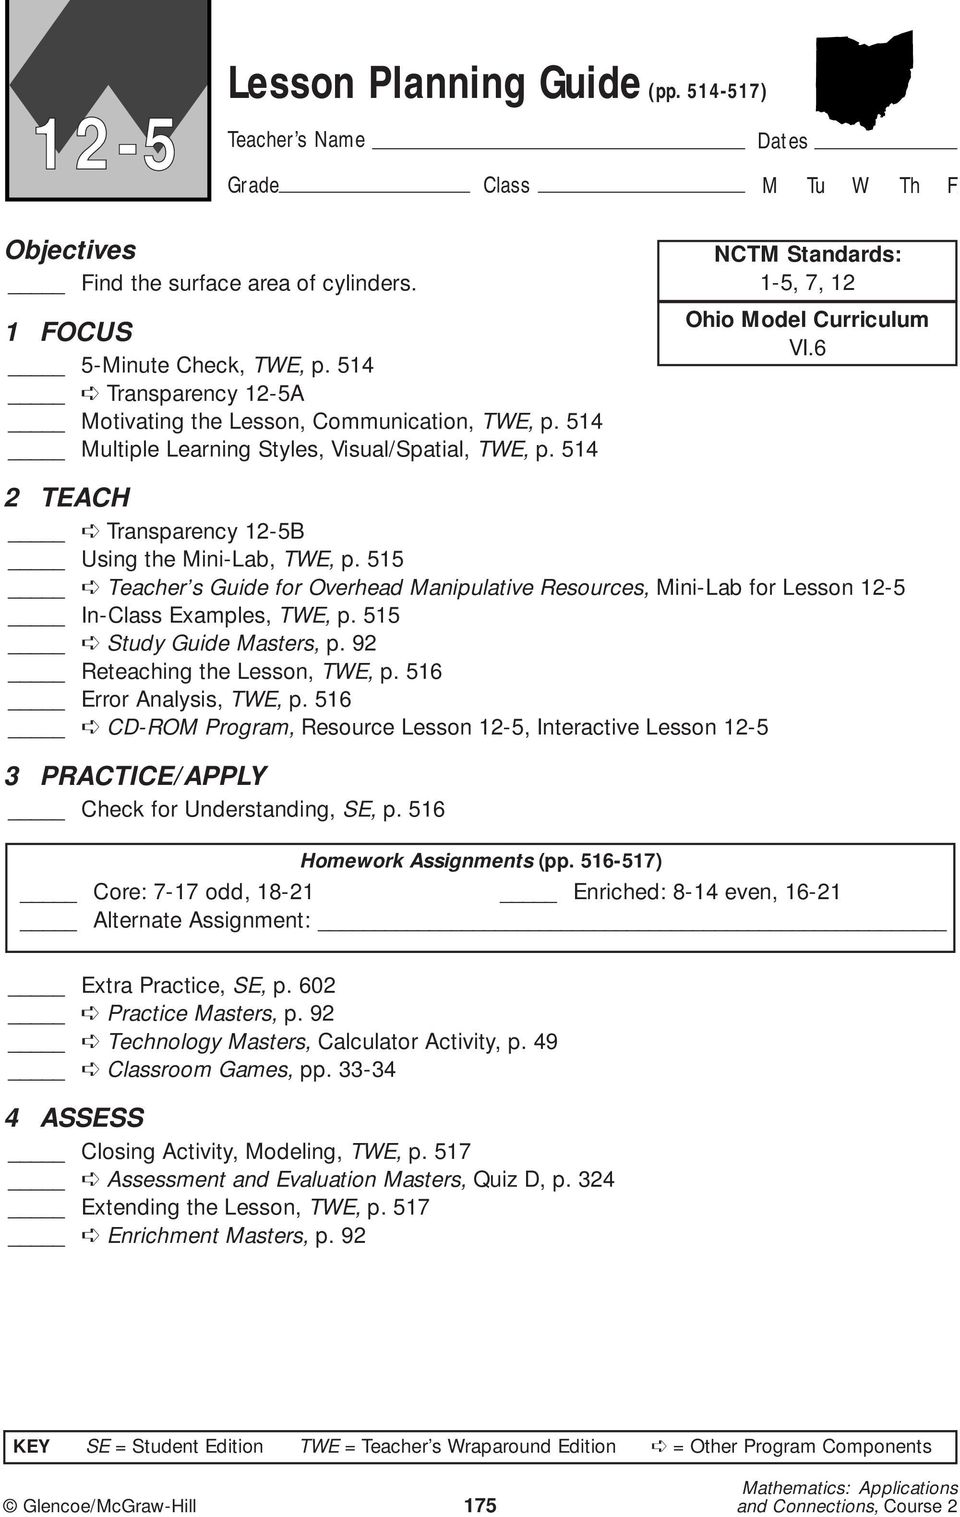 515 Teacher s Guide for Overhead Manipulative Resources, Mini-Lab for Lesson 12-5 In-Class Examples, TWE, p. 515 Study Guide Masters, p. 92 Reteaching the Lesson, TWE, p. 516 Error Analysis, TWE, p.